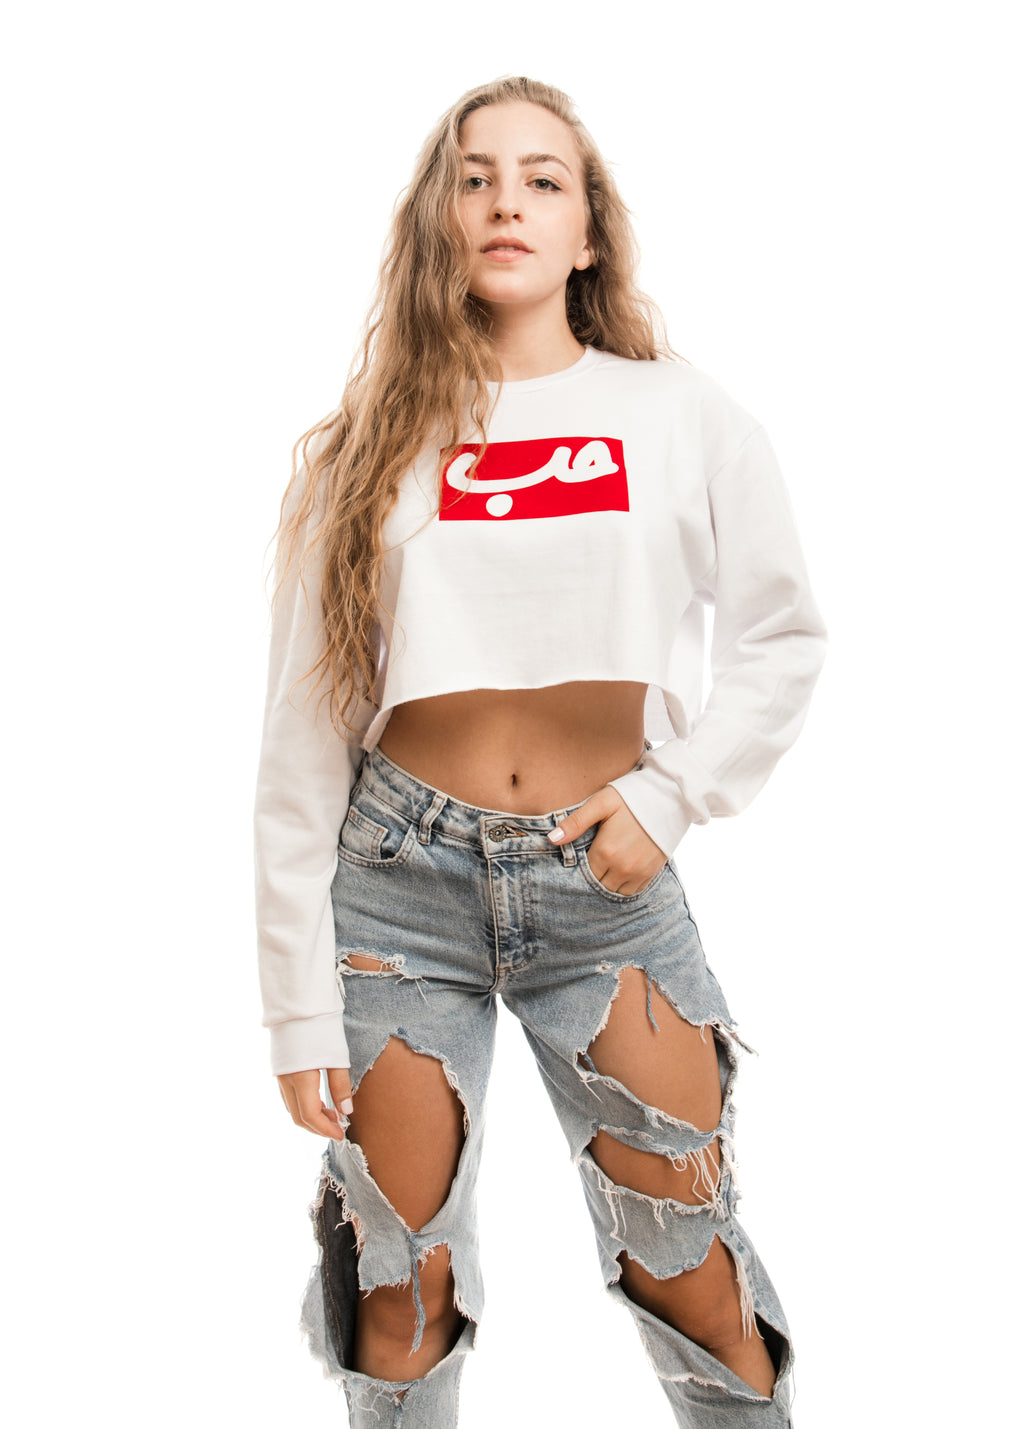 Boshies, Red Framed Hob Crop Sweater حب, boshies store, , boshies, arab, hob, hobb, love, حب, amour, fashion, clothing, shopping, beirut, بيروت, dubai, abu dhabi, doha, kuwait city, riyadh, jeddah, damascus, cairo, shirt, tshirt, hoodie, socks, sweater, crop sweater, dress, sweatpants, jogger, tarboosh, tarbouche, tarboush, طربوش, techno, تكنو, habibi, حبيبي, lebanon, ksa, uae, qatar, kuwait, bahrain, egypt, morocco, tunisia, algeria, syria, oriental, lebanese, saudi, emirati,